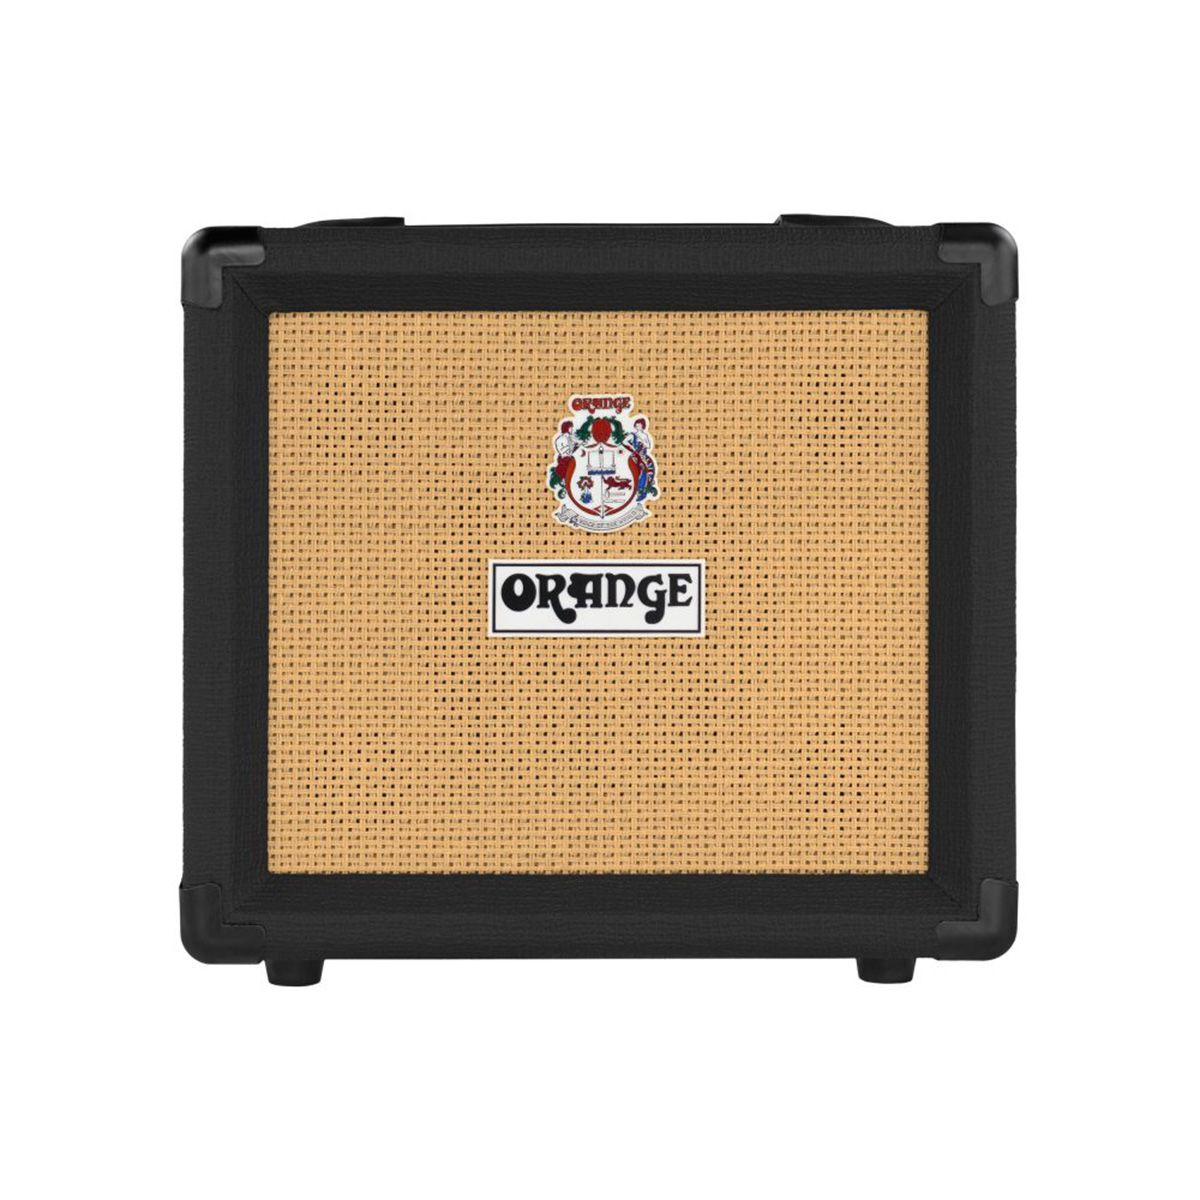 Caixa Amplificada Orange Crush 12W 1x6 Black para Guitarra